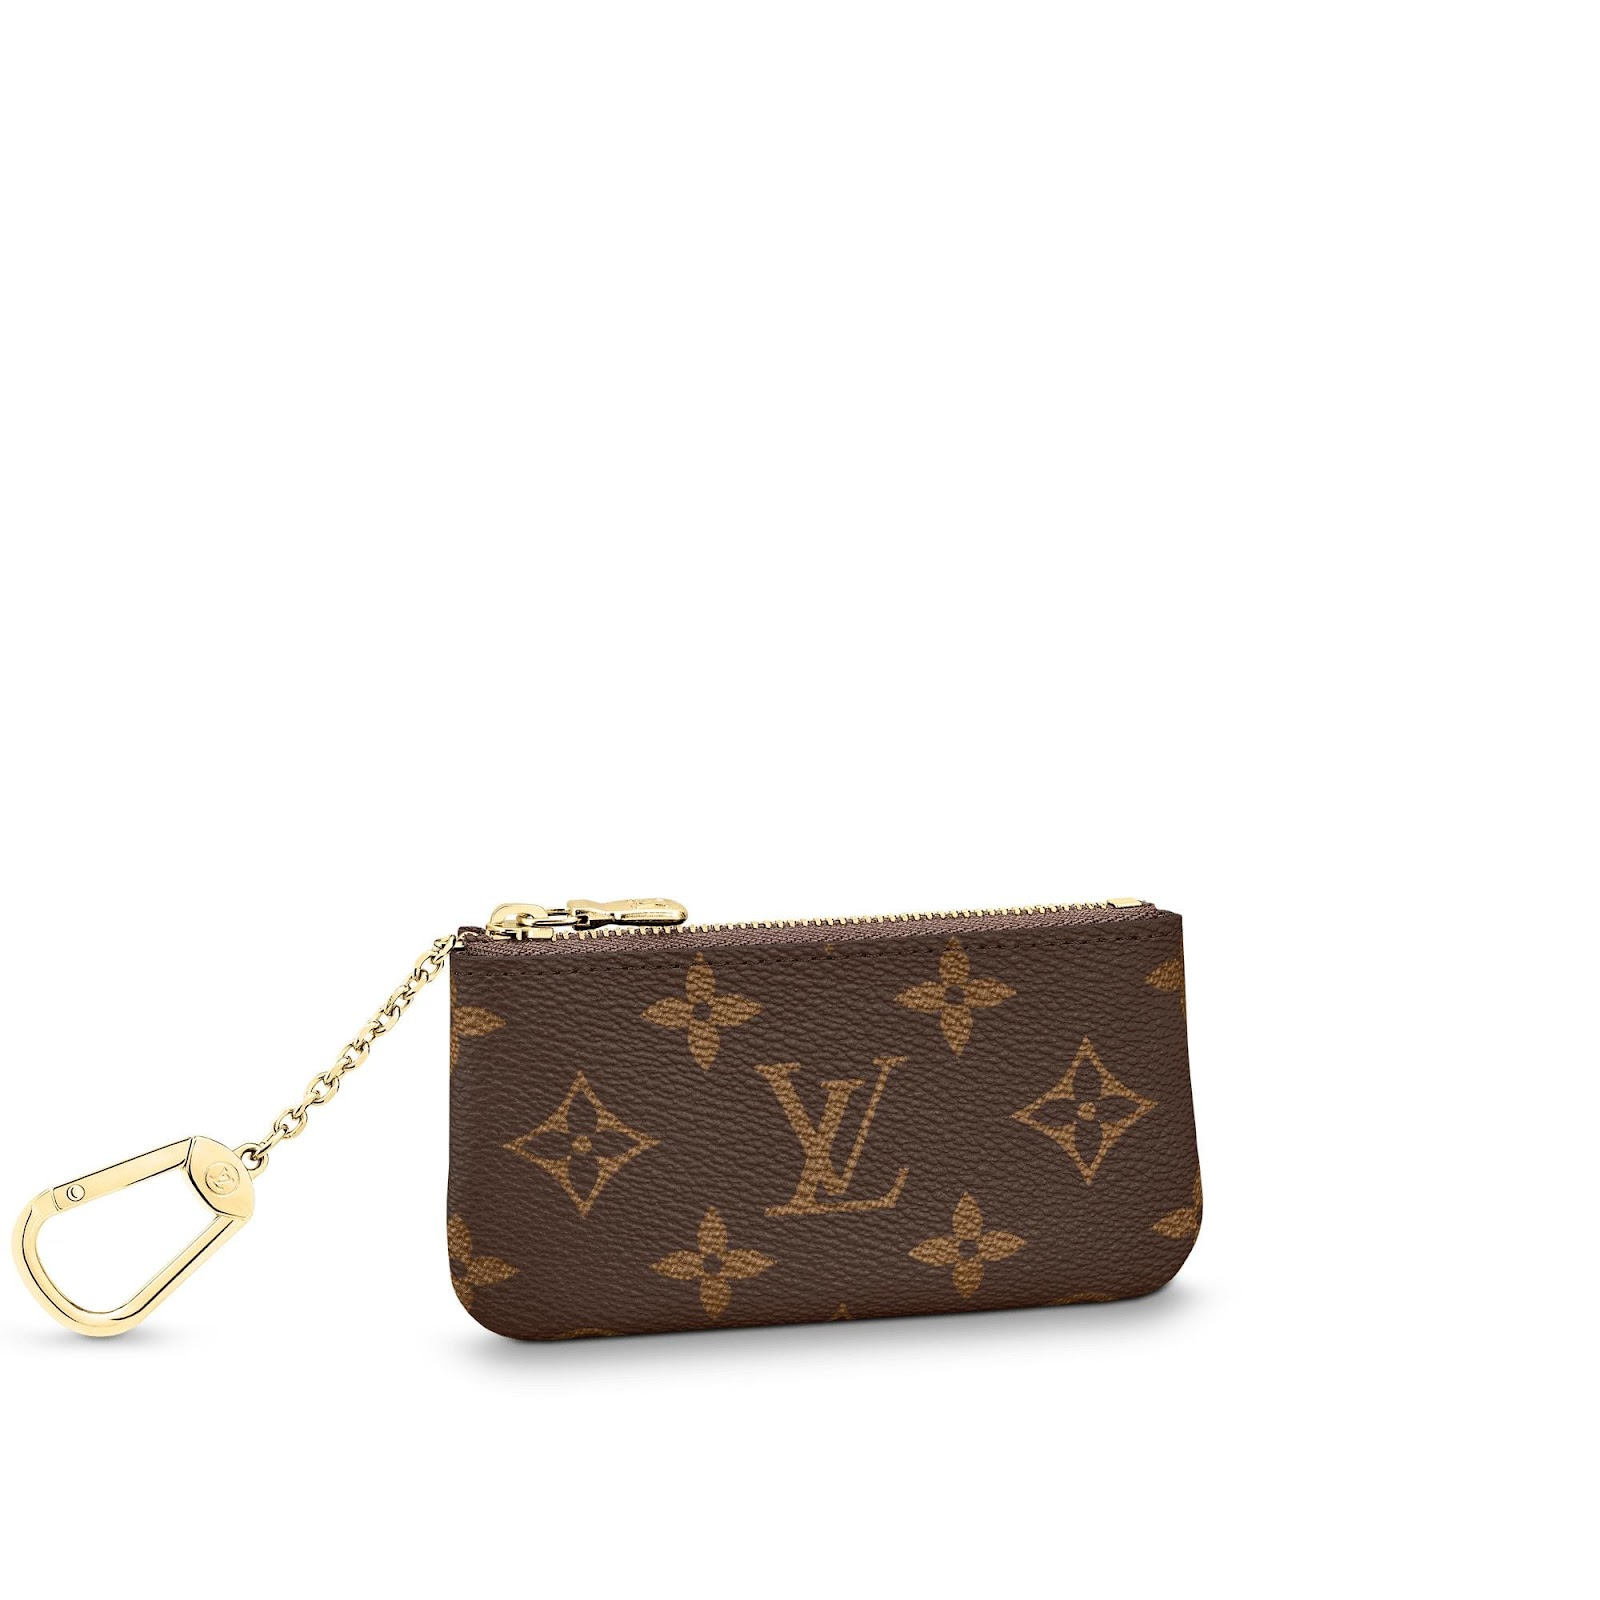 Image result for louis vuitton key pouch